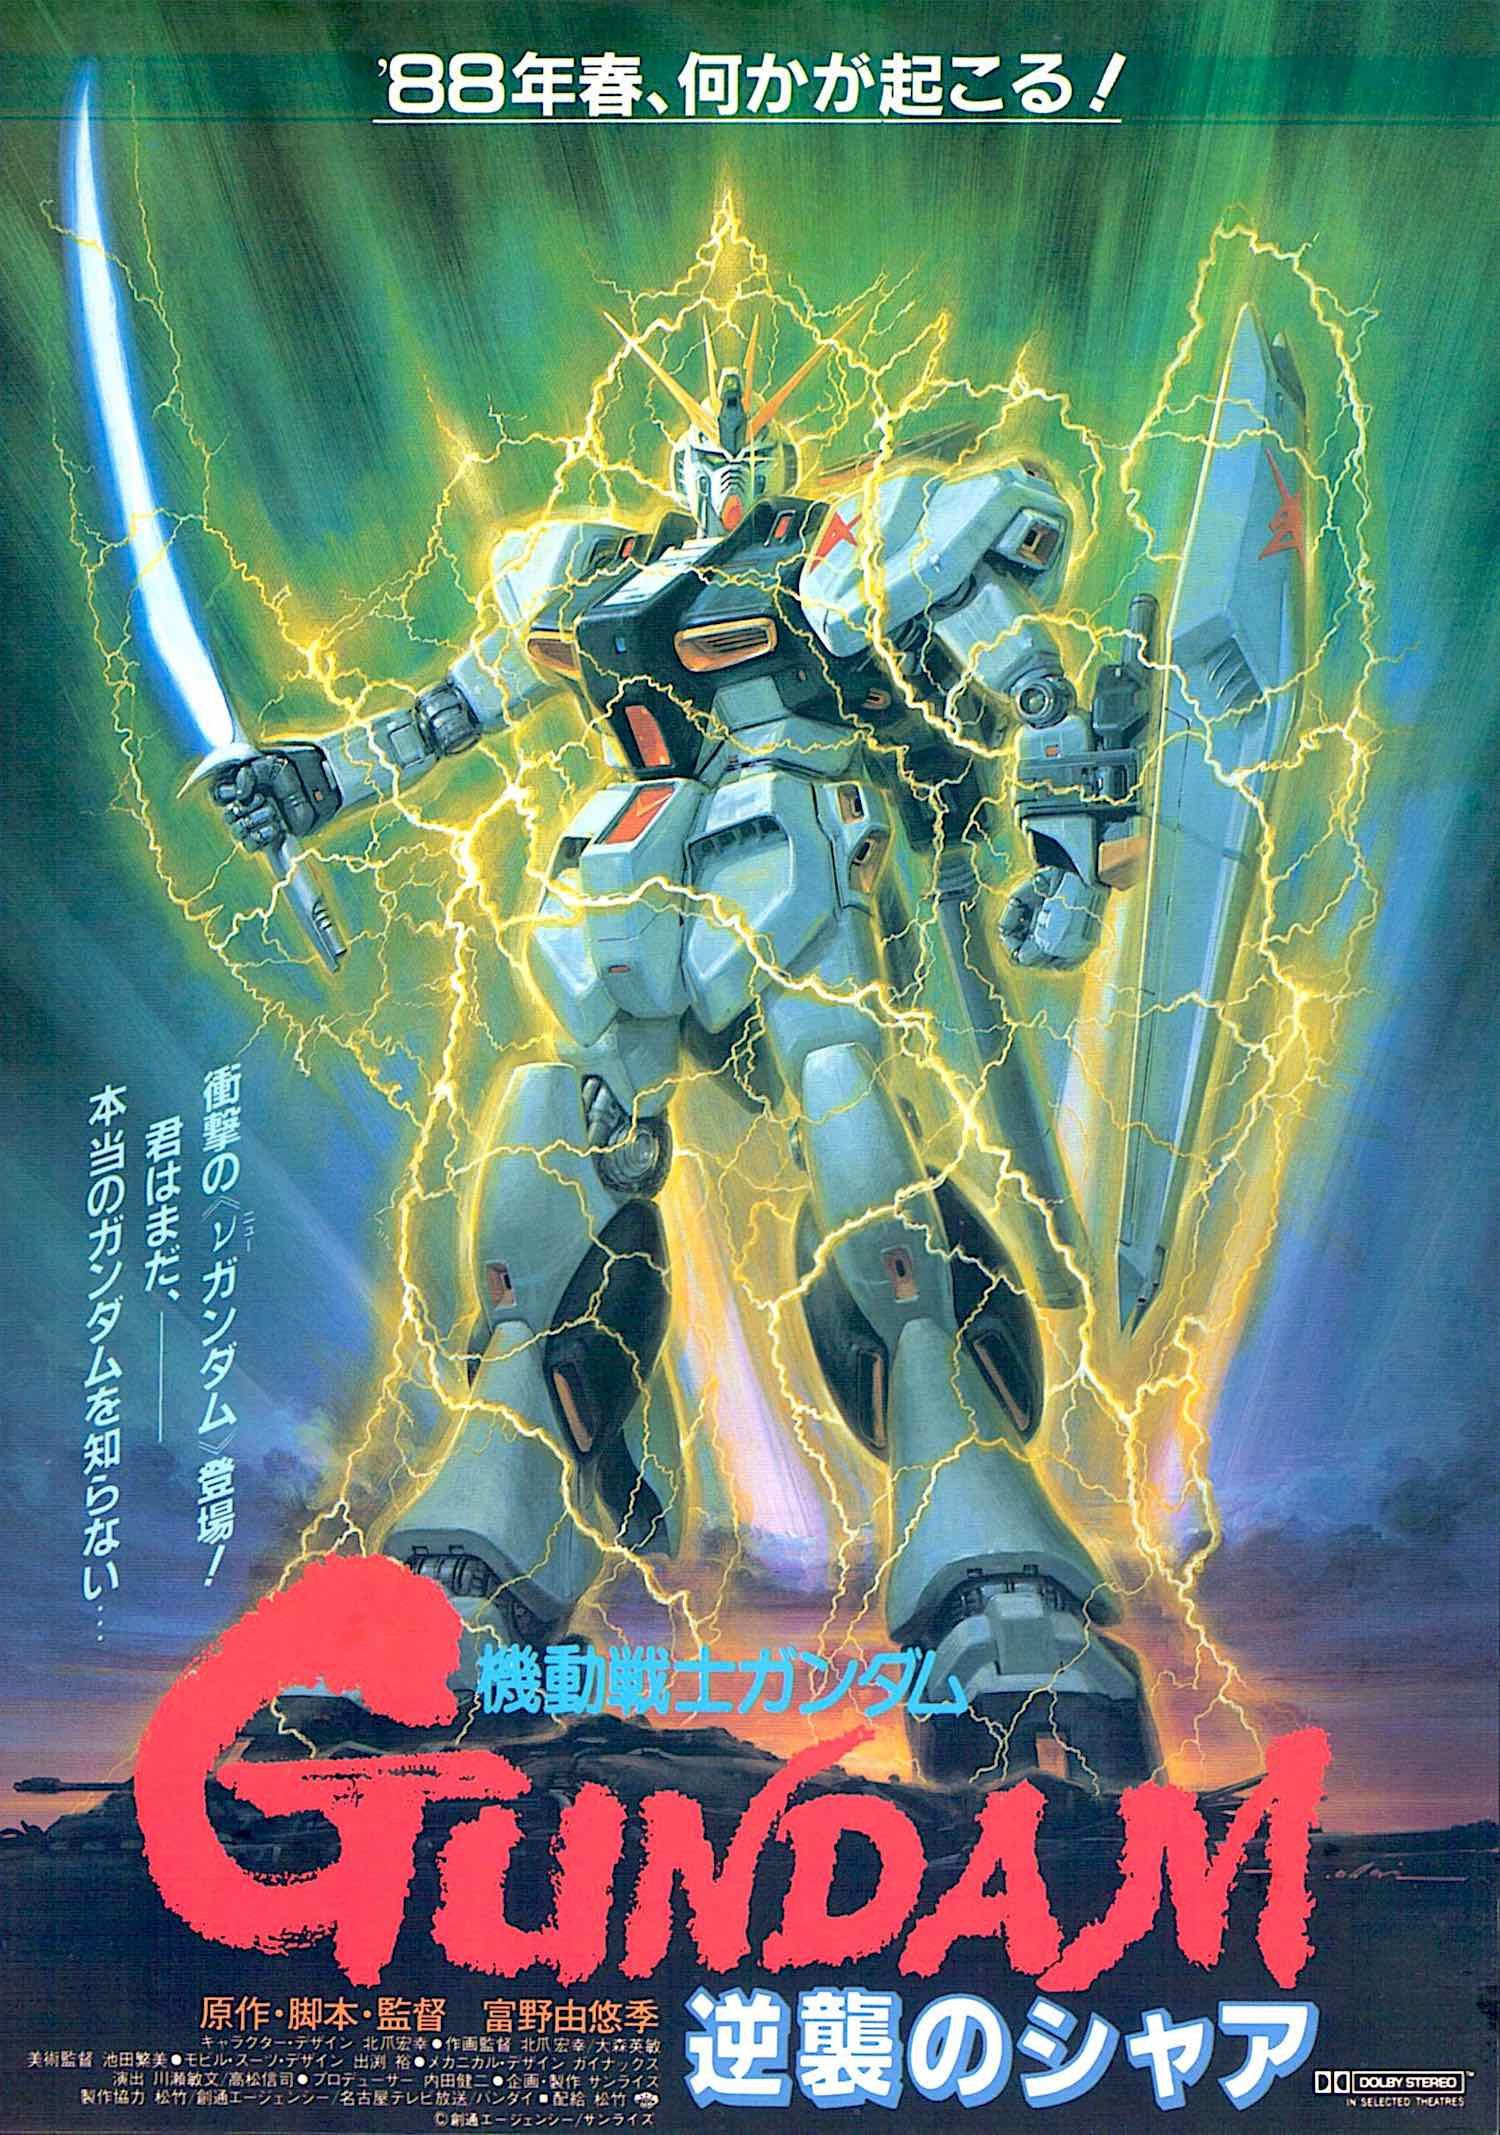 Mobile suit gundam chars counterattack 80s anime